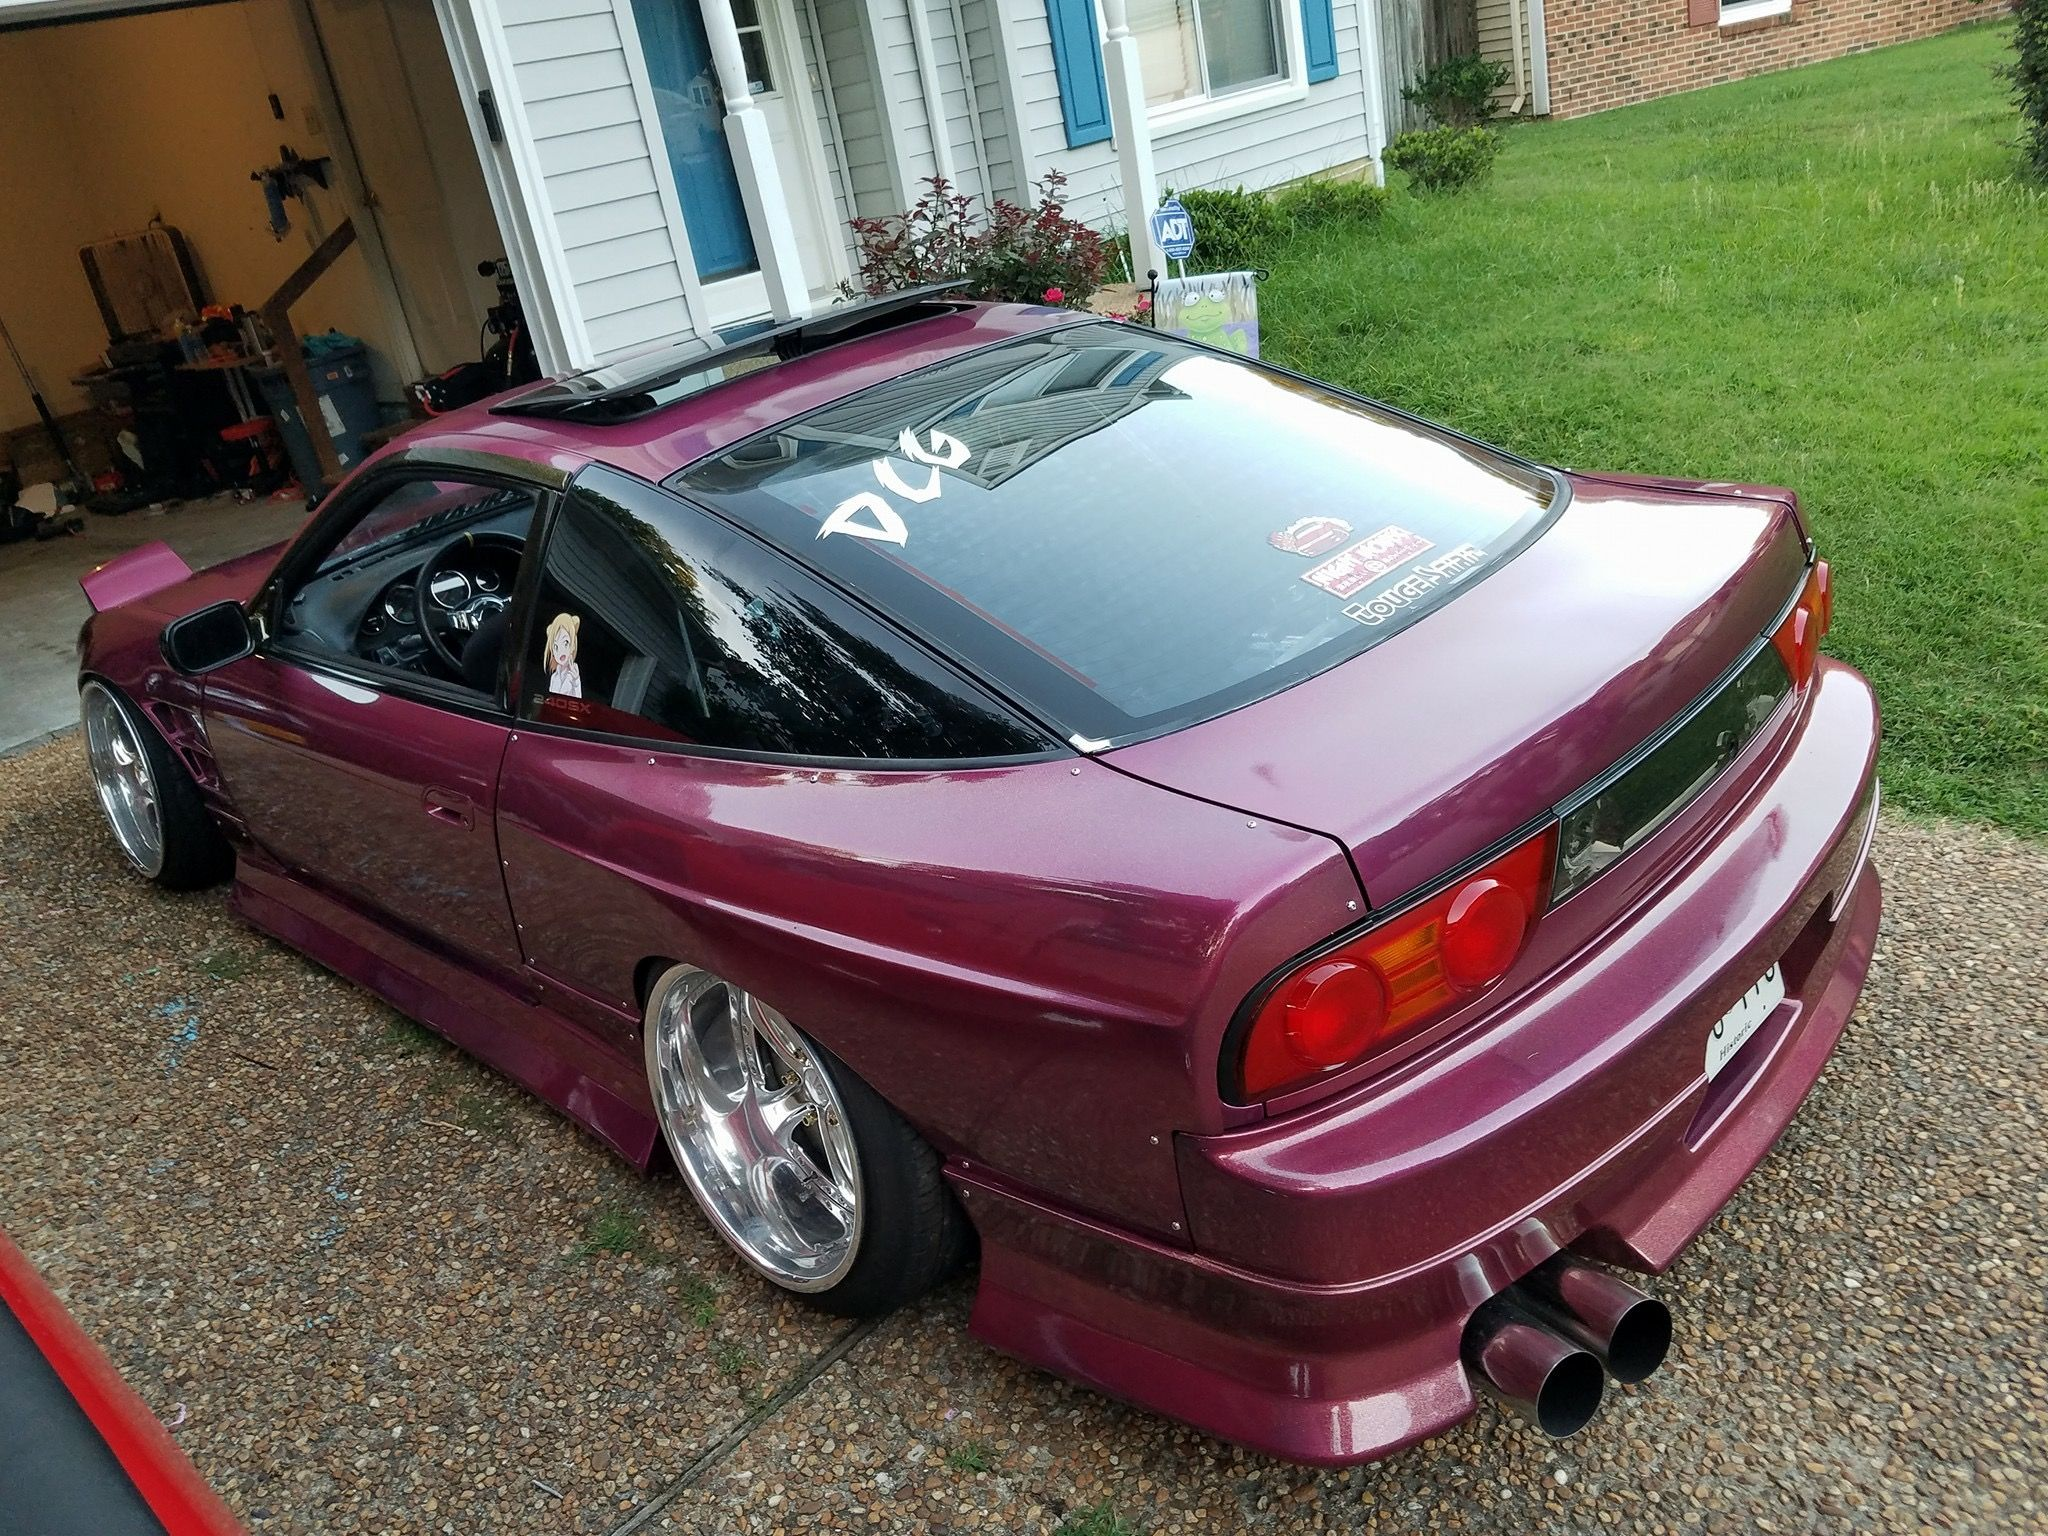 Nissan Silvia S13 Rsp13 180sx 240sx Hatch Modified Slammed Lowered Stance Fitment Widebodyflares Driftbuild Drifting Cars Drift Cars Tuner Cars